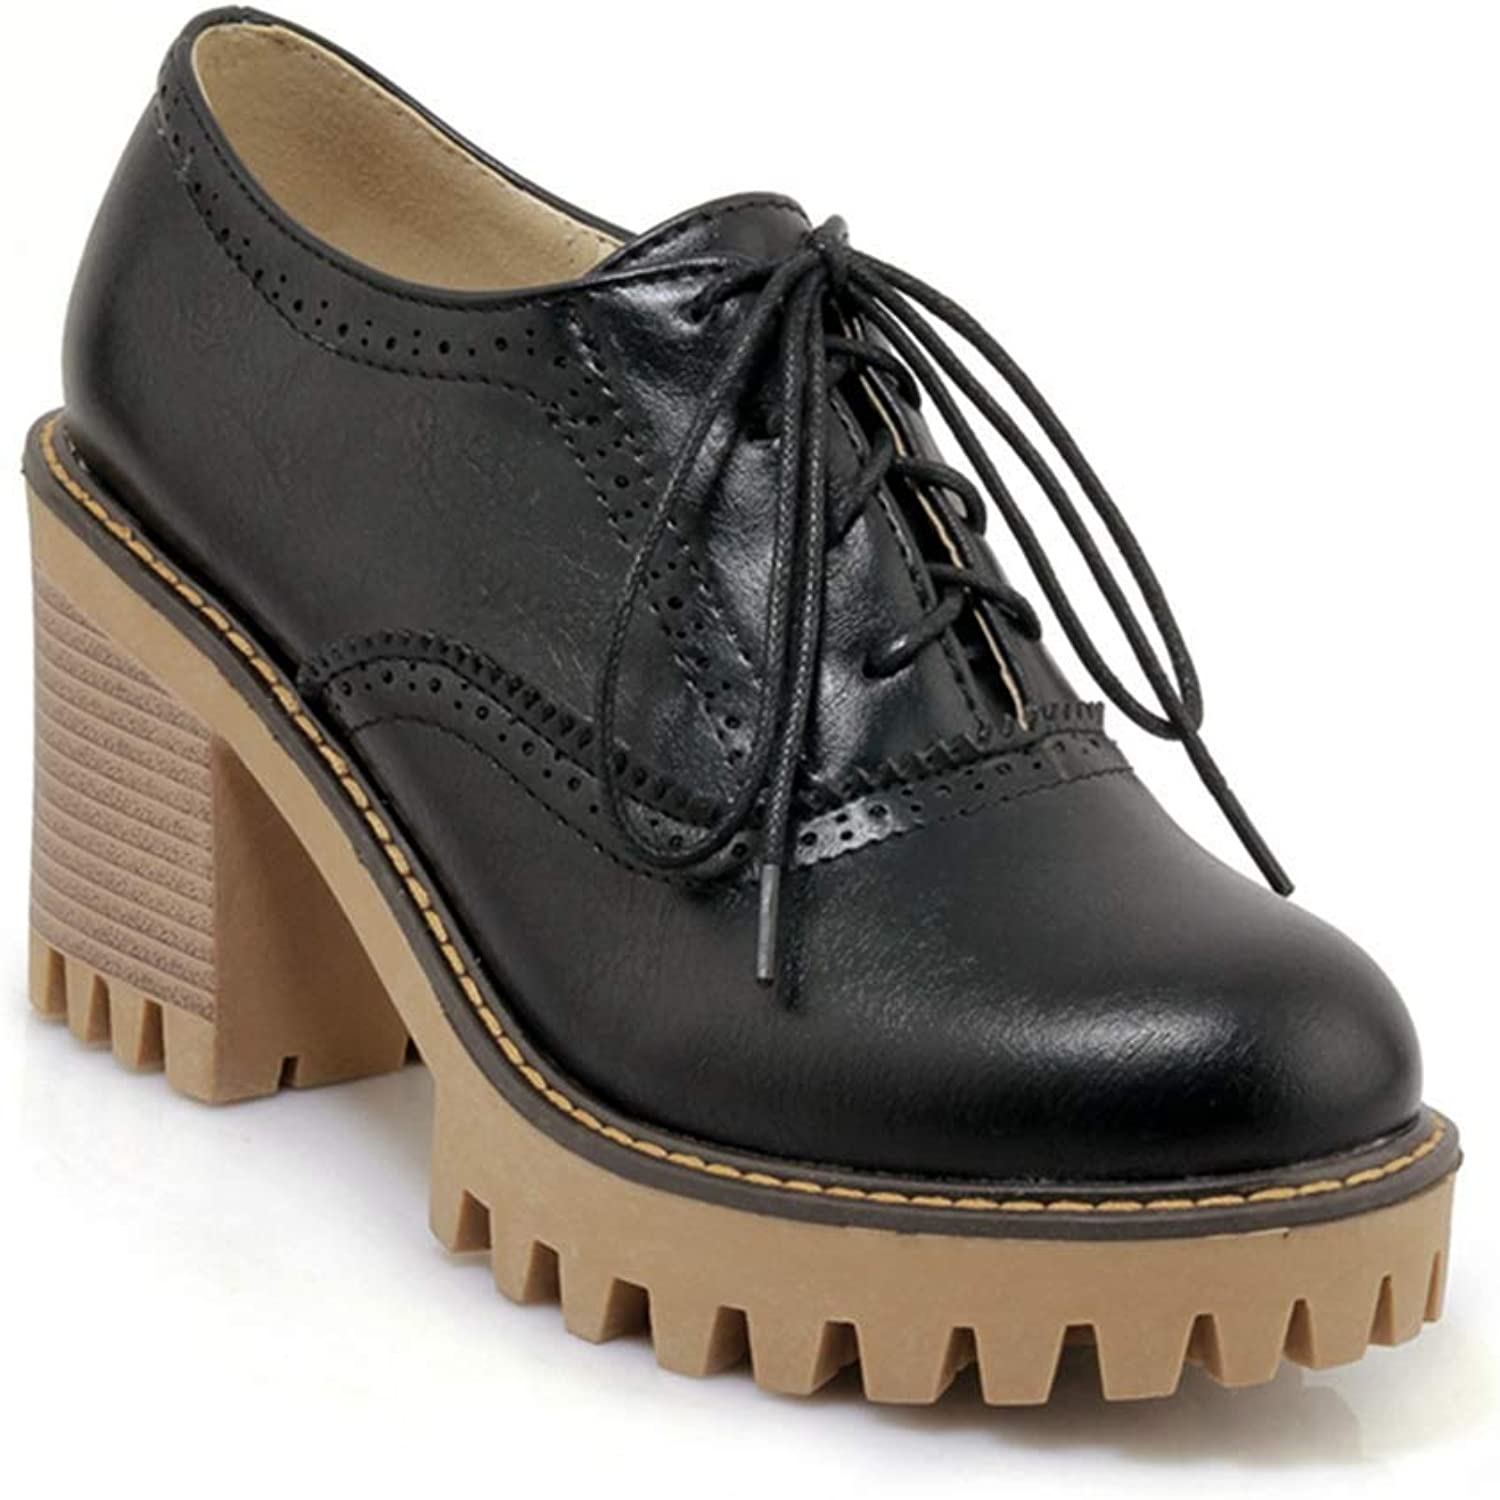 Beautiful - Fashion Women's Platform Oxfords shoes Lace-up Round Toe Slip On Chunky Mid Heel Vintage Dress shoes Pumps